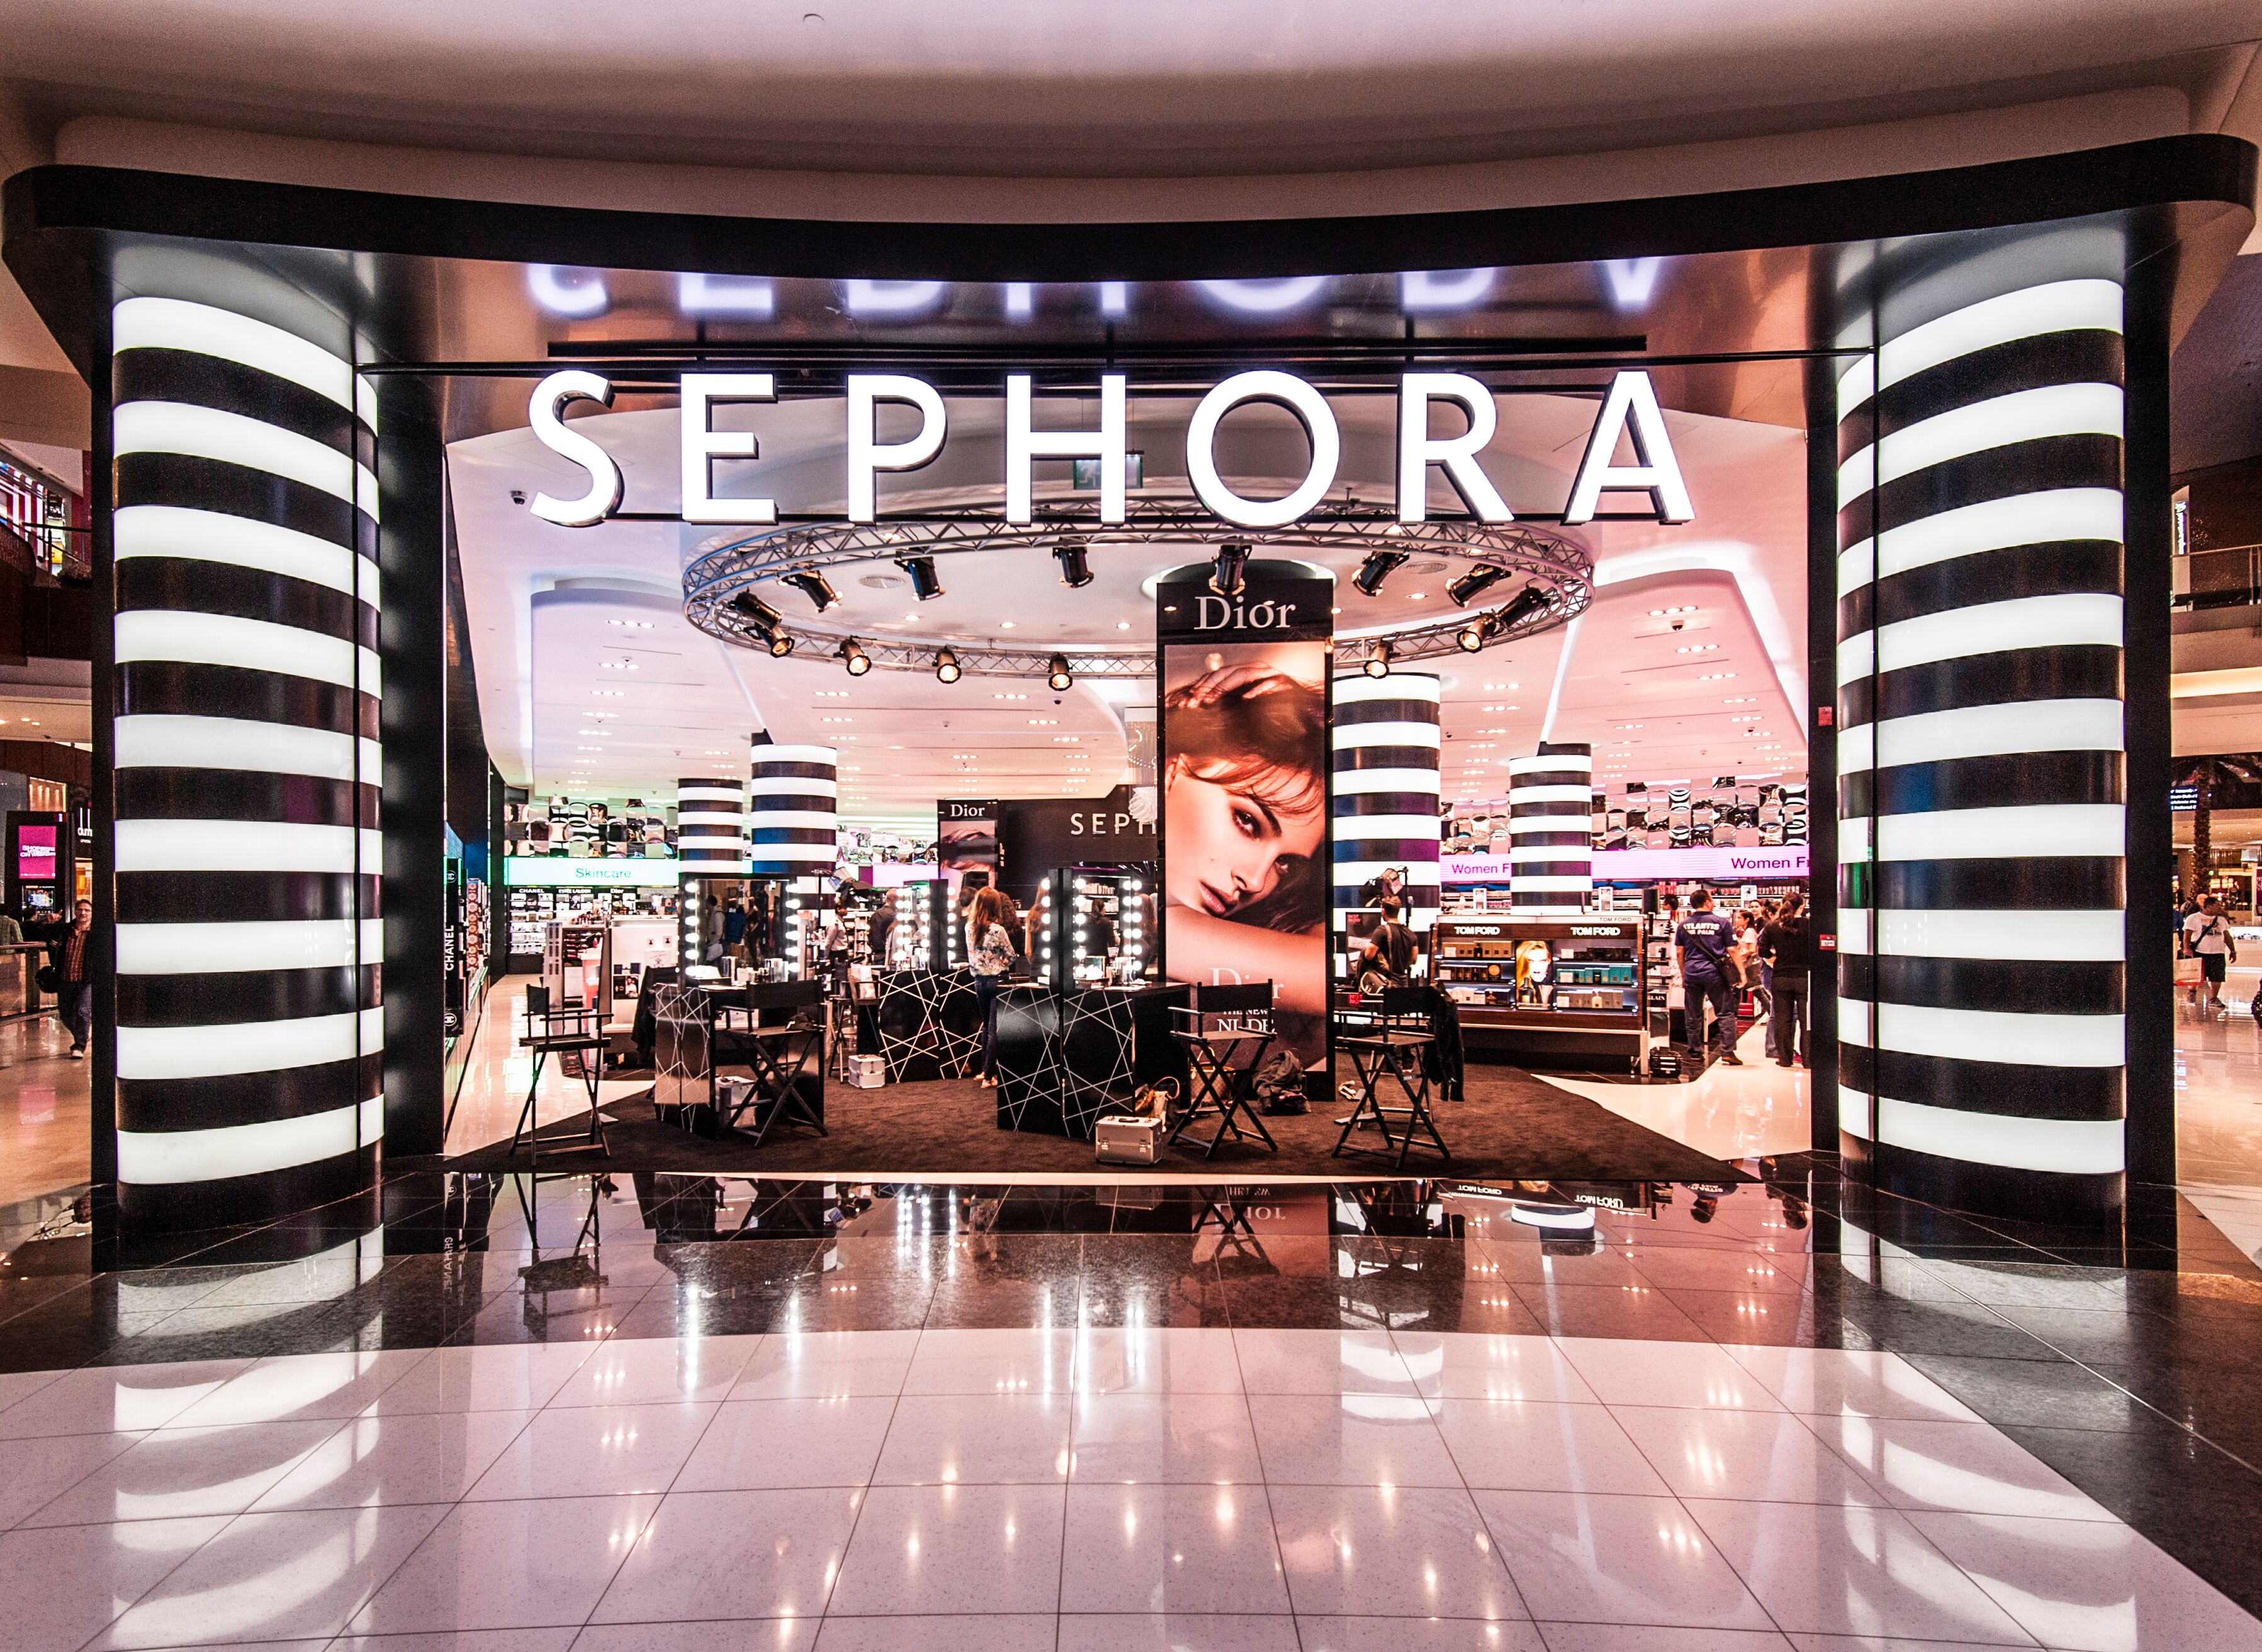 Sephora set to open in New Zealand soon, advertising for